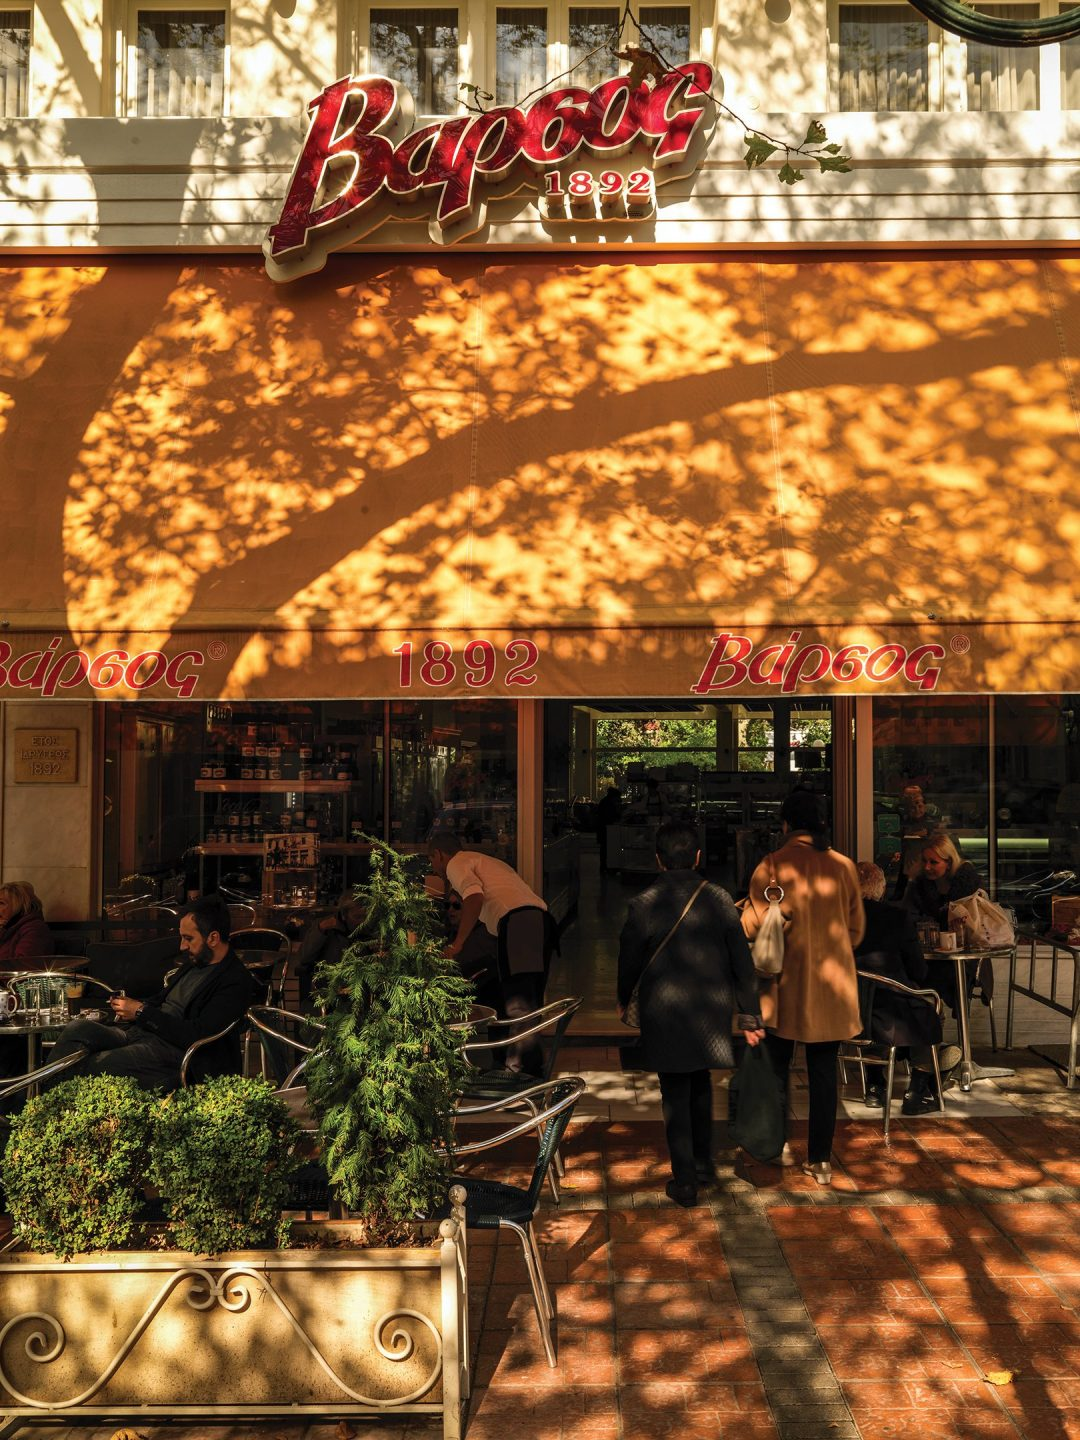 Varsos, at the centre of Kifissia, is one of the most classic and famous dairies of Athens